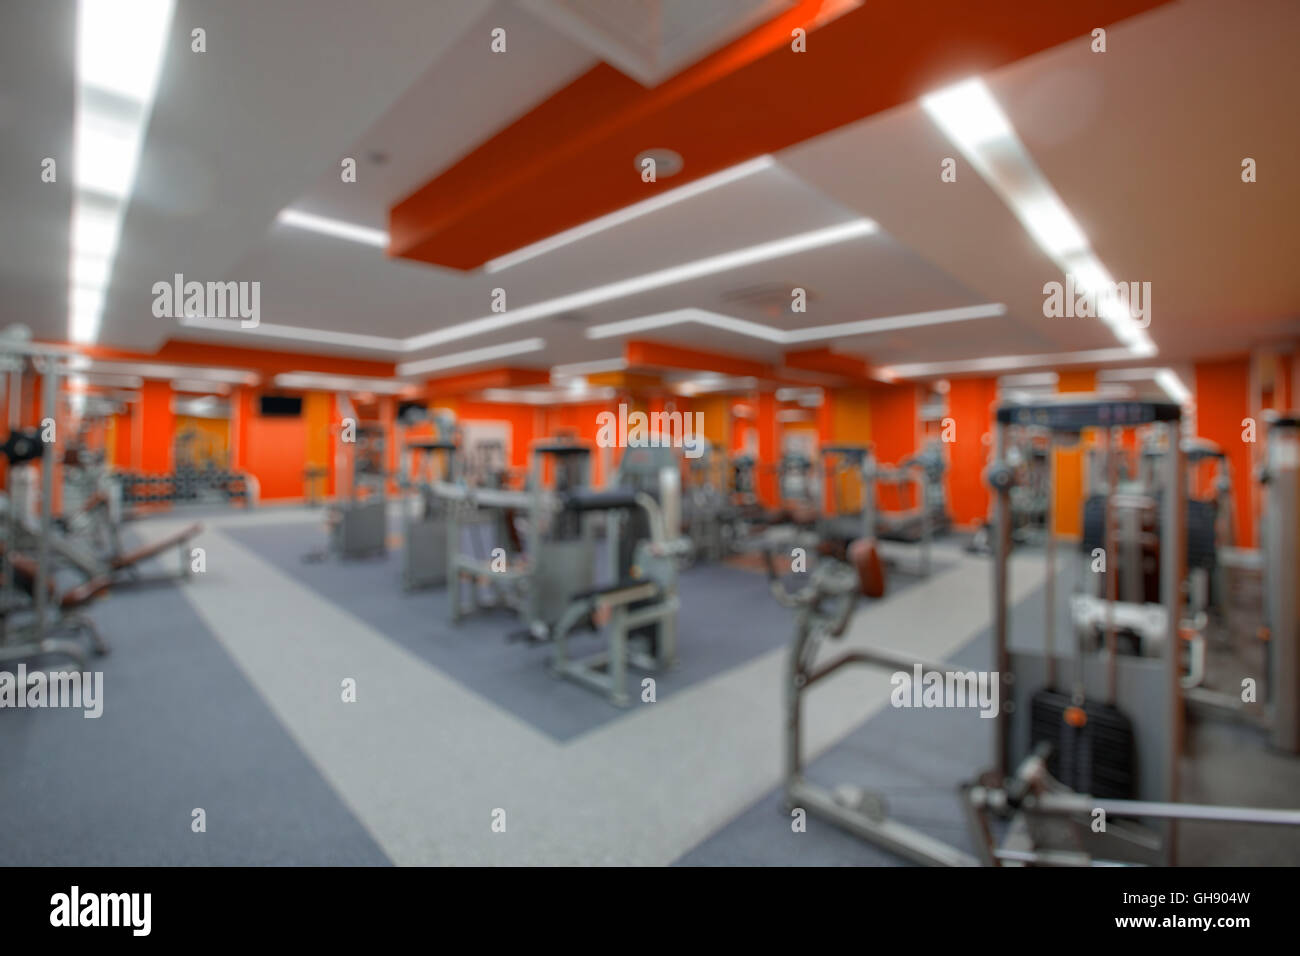 Fitnessraum modern  Blur abstract background modern fitness center lifestyle with ...